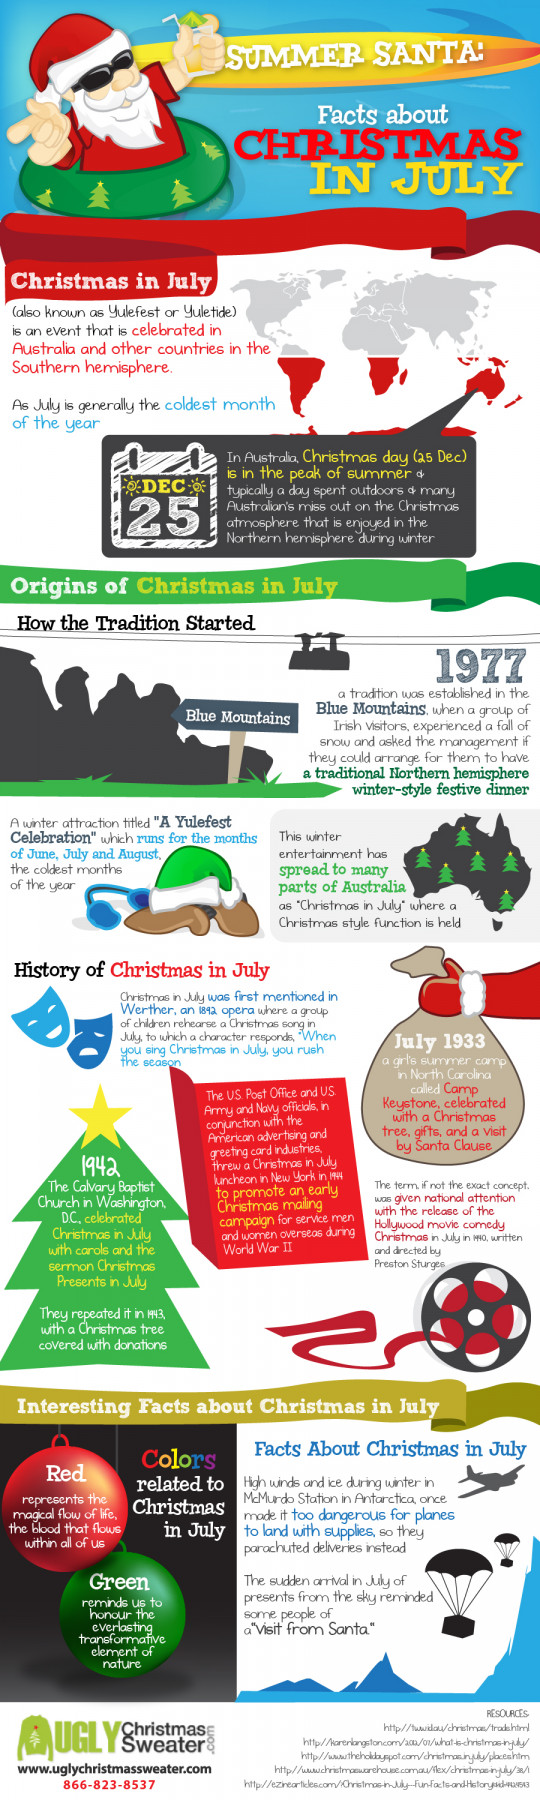 Summer Santa: Facts about Christmas in July